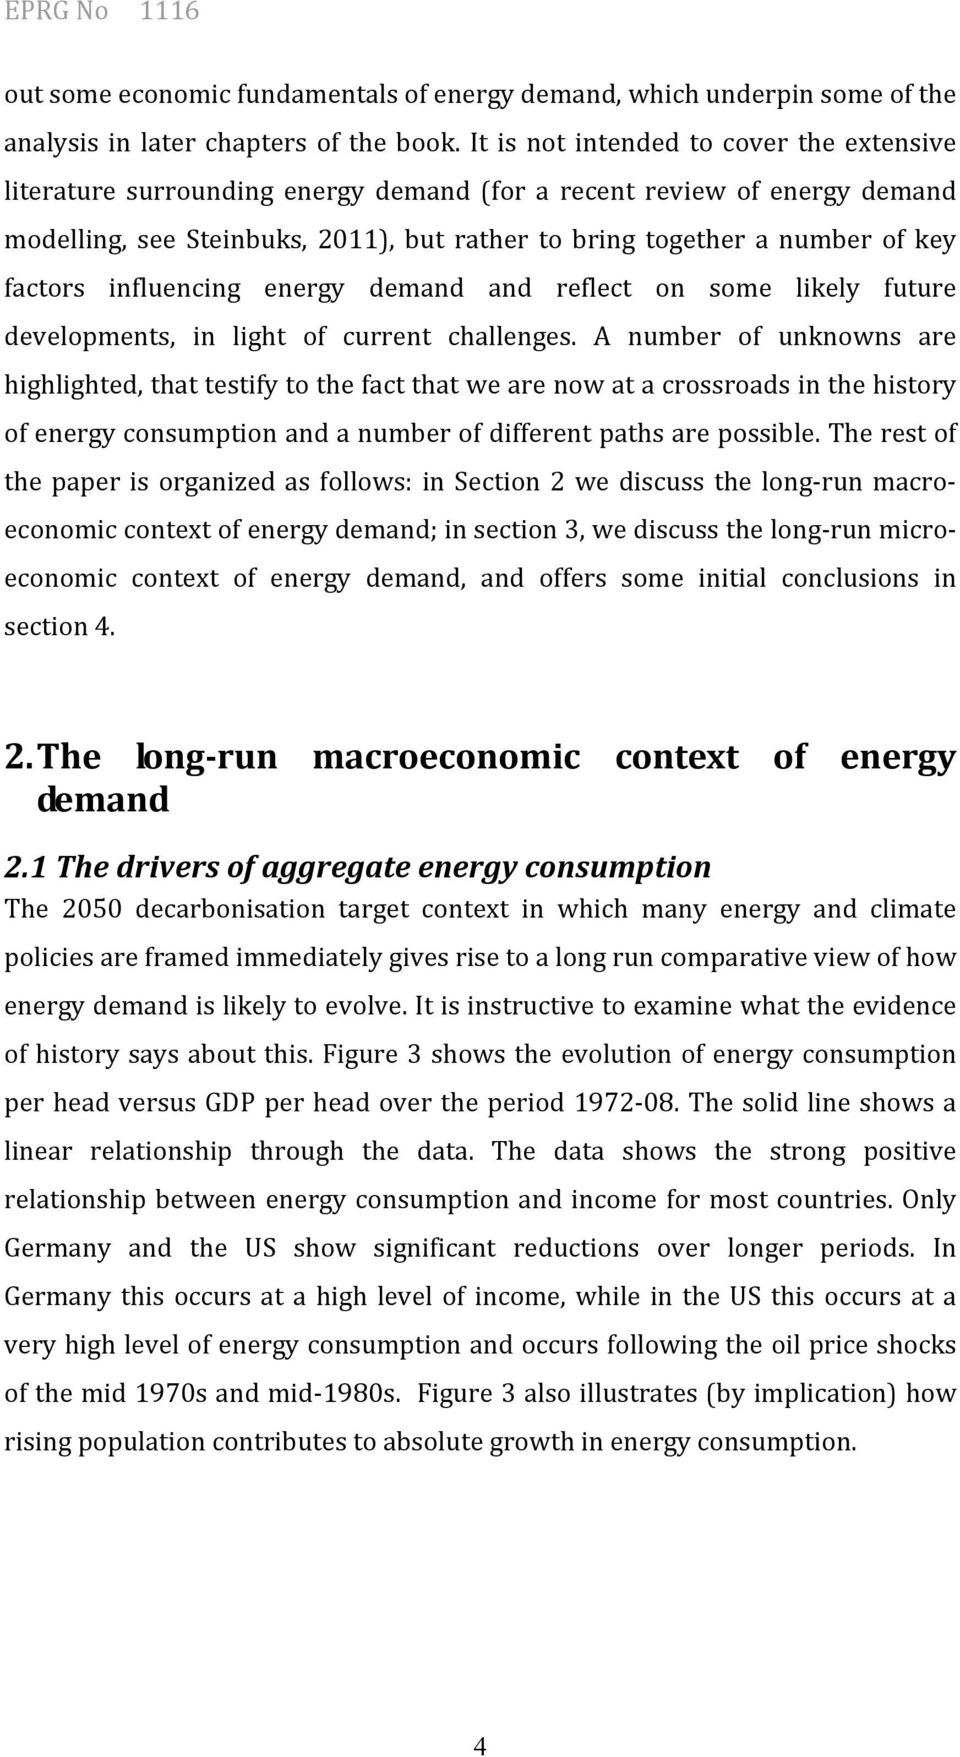 factors influencing energy demand and reflect on some likely future developments, in light of current challenges.